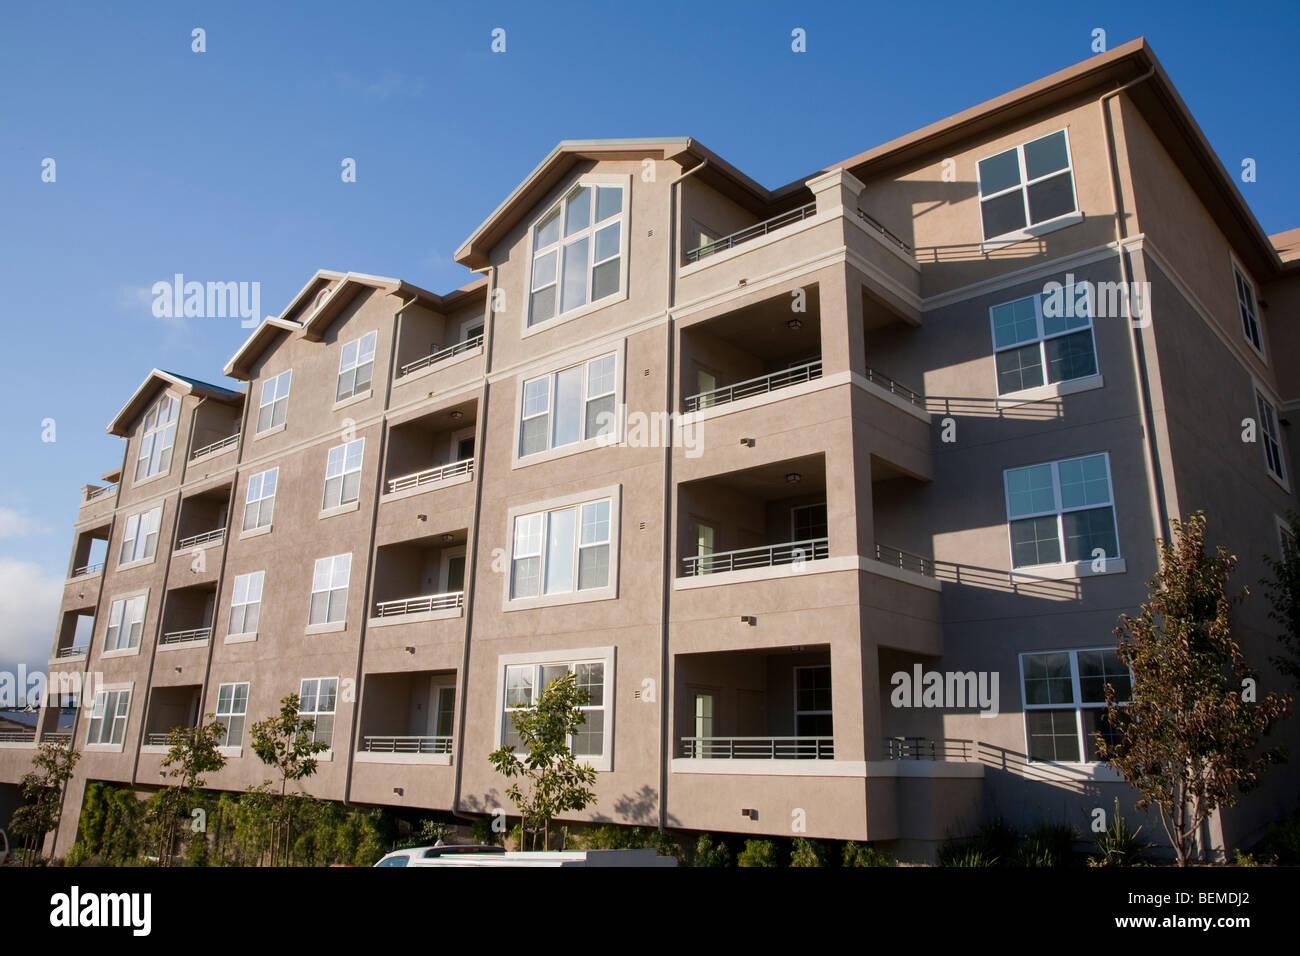 A newly built compact housing development lined with trees. Park Broadway on El Camino Real in Millbrae, CA, USA Stock Photo